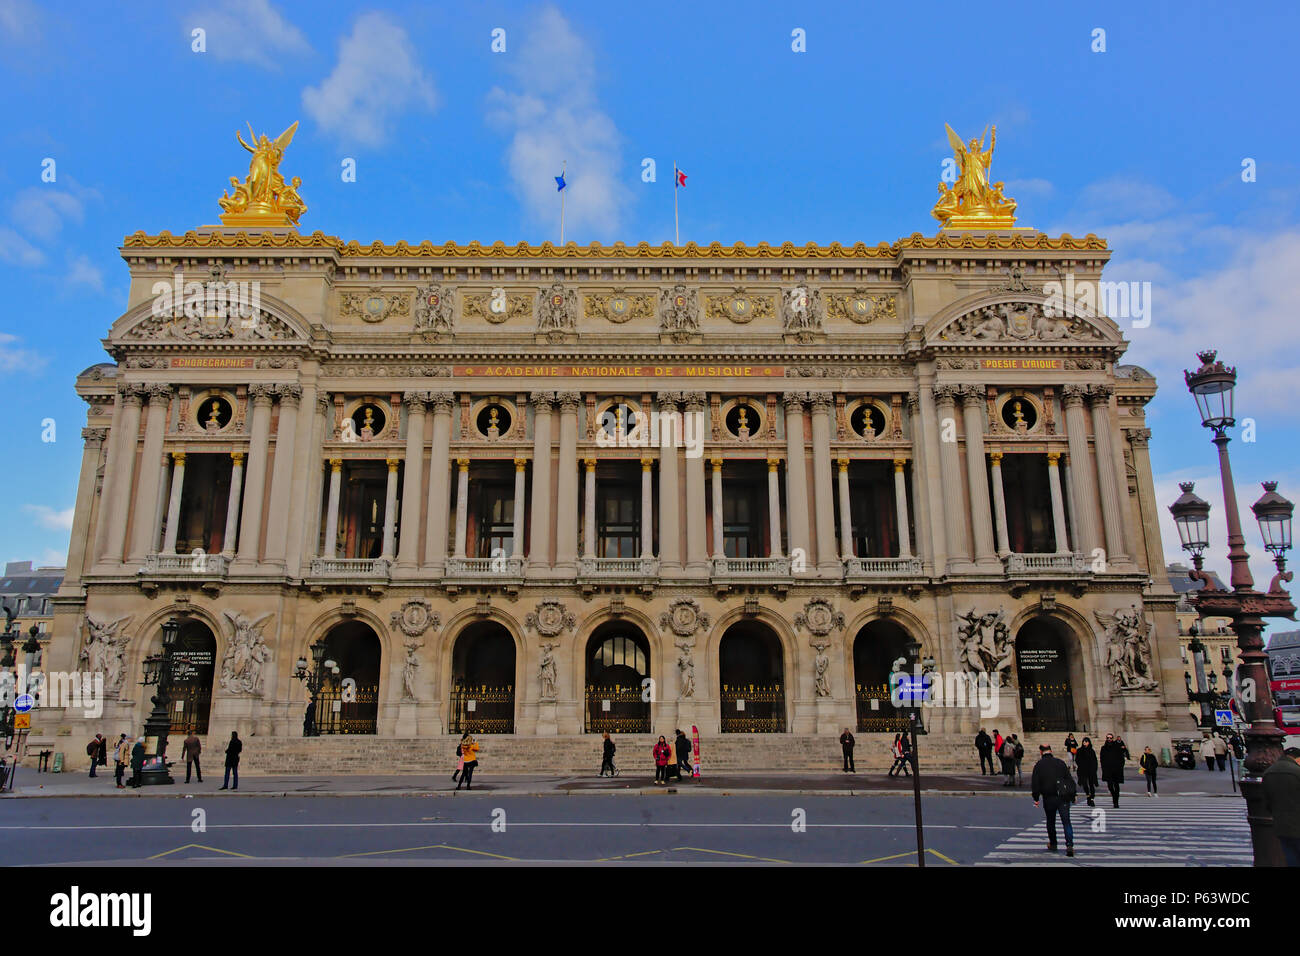 alais Garnier, ornate opera building with golden statues in Second-Empire Beaux-Arts style, Paris, France - Stock Image